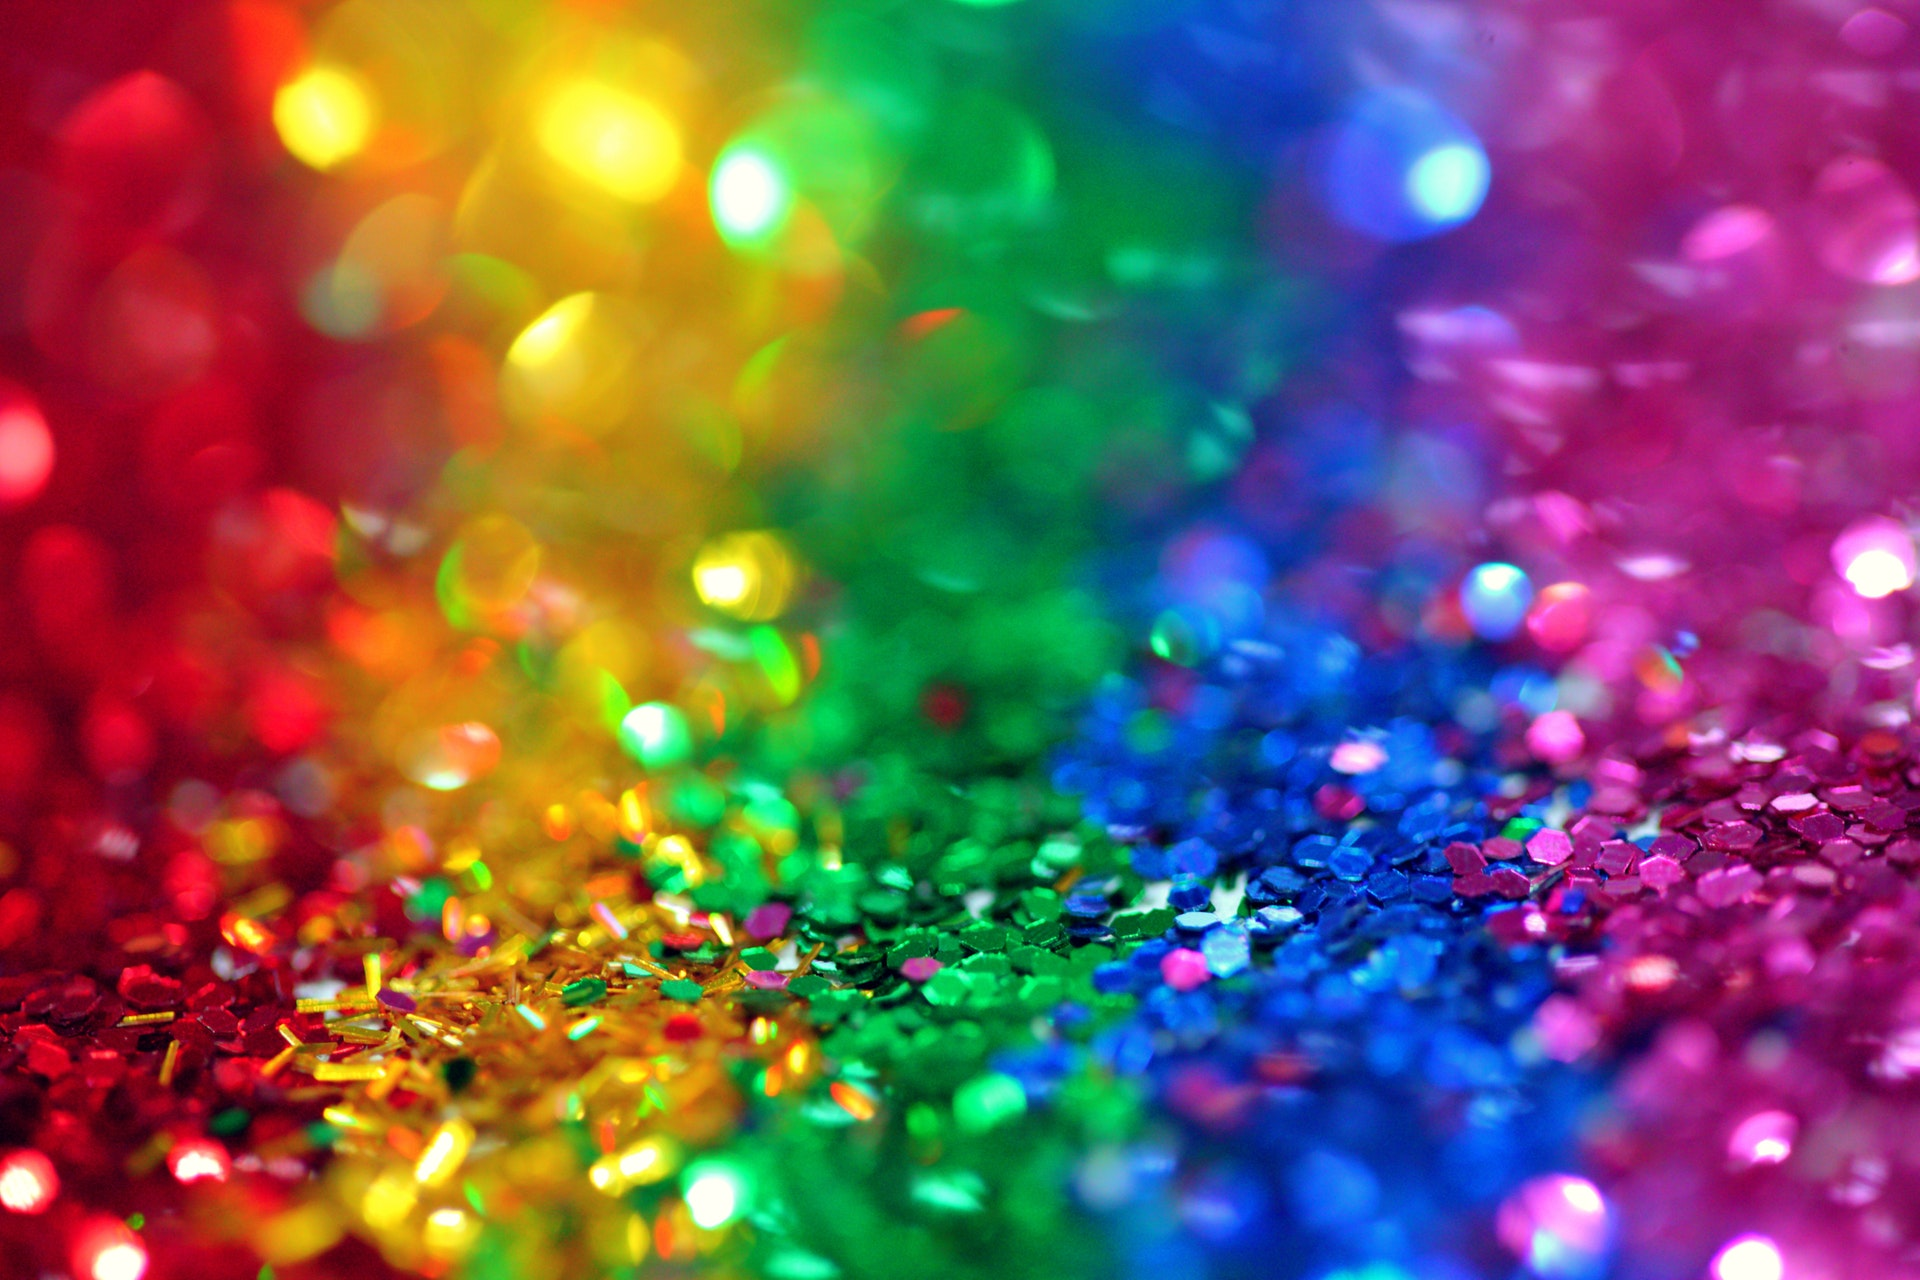 download wallpaper: gekleurde glitters wallpaper